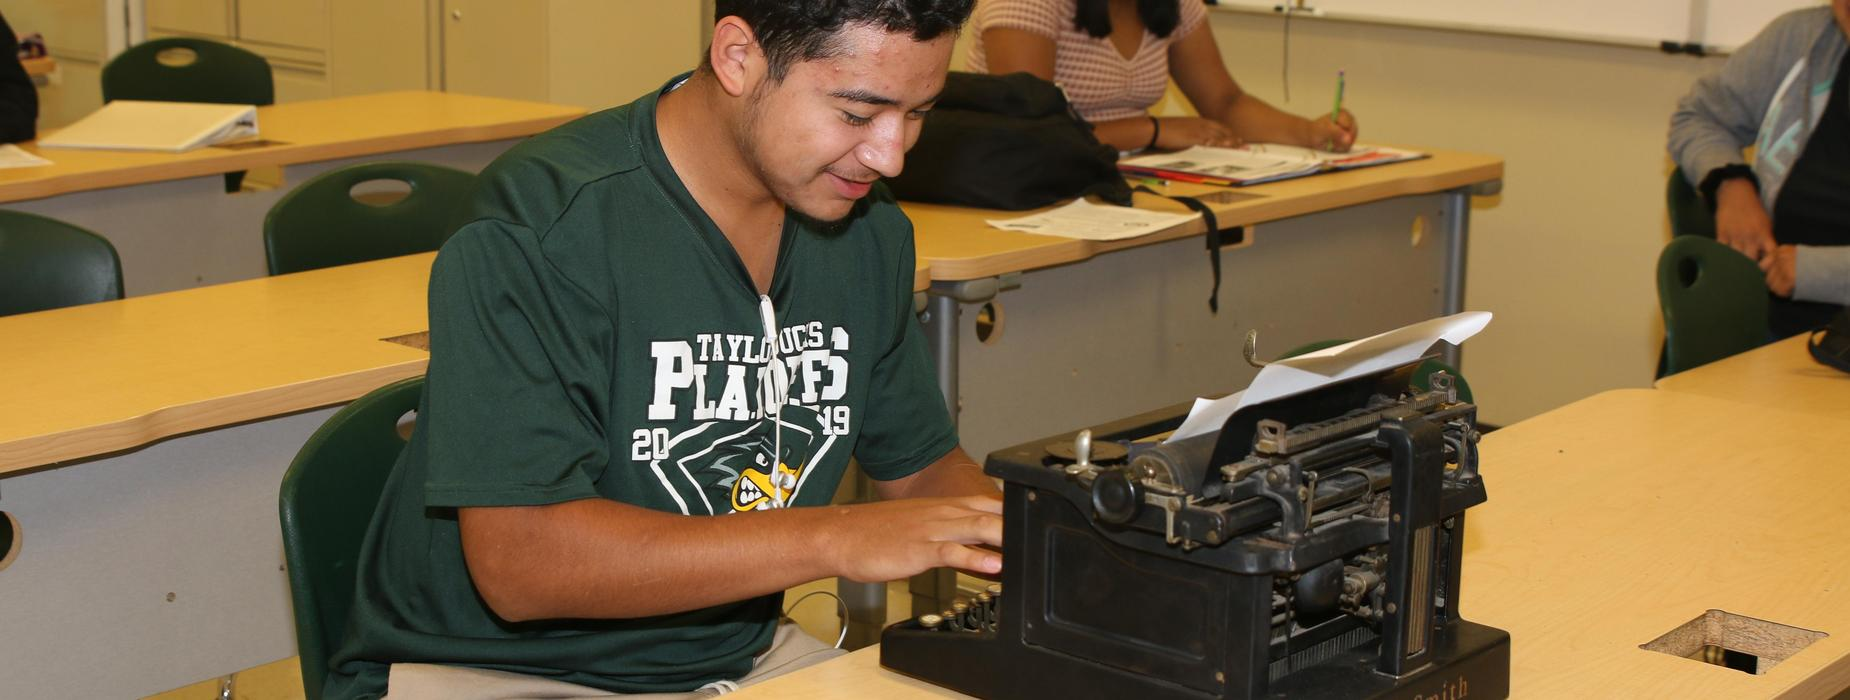 Student using a typewriter.